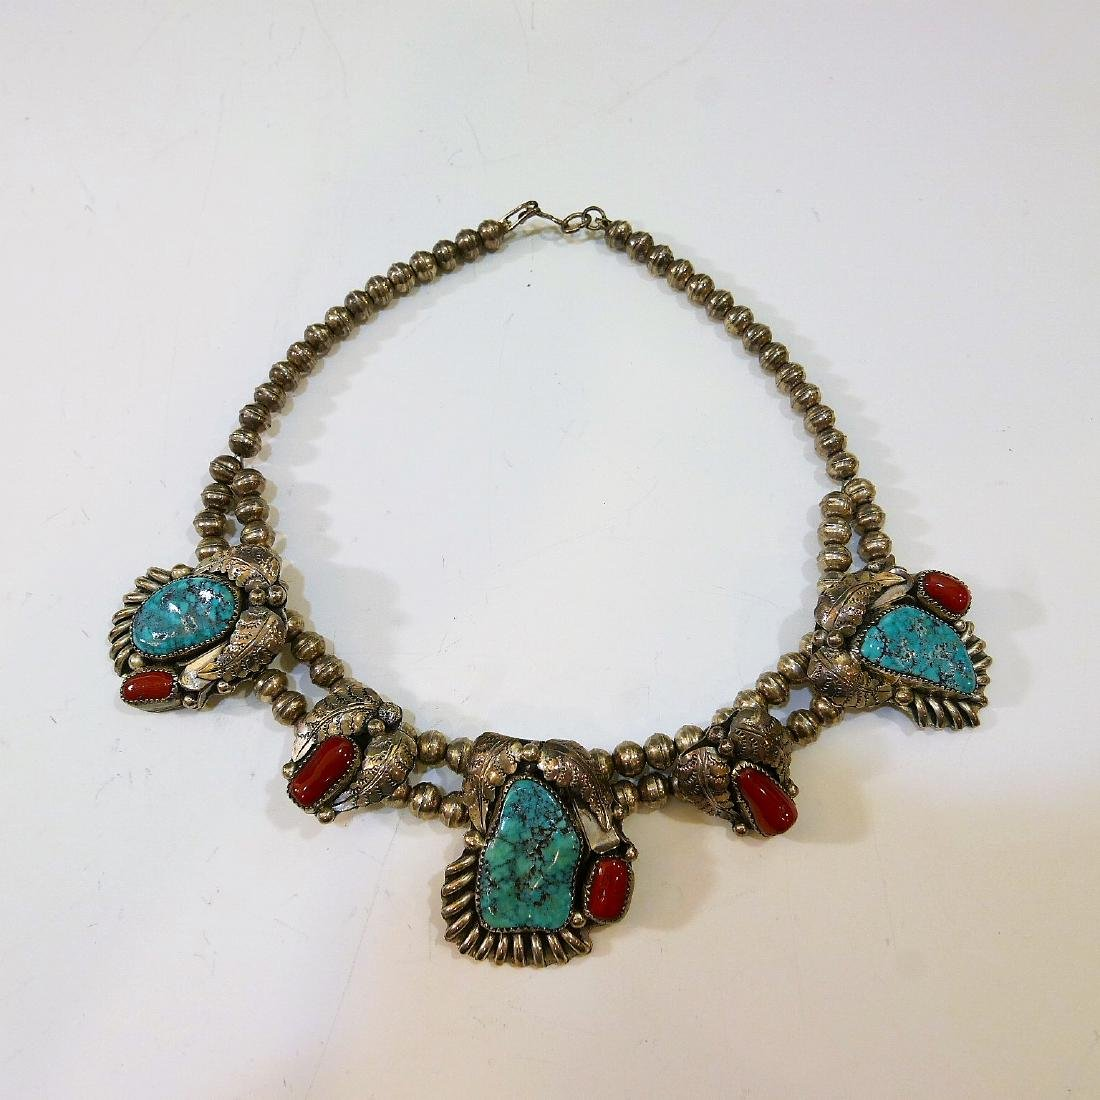 NAVAJO STERLING SILVER CORAL TURQUOISE NECKLACE